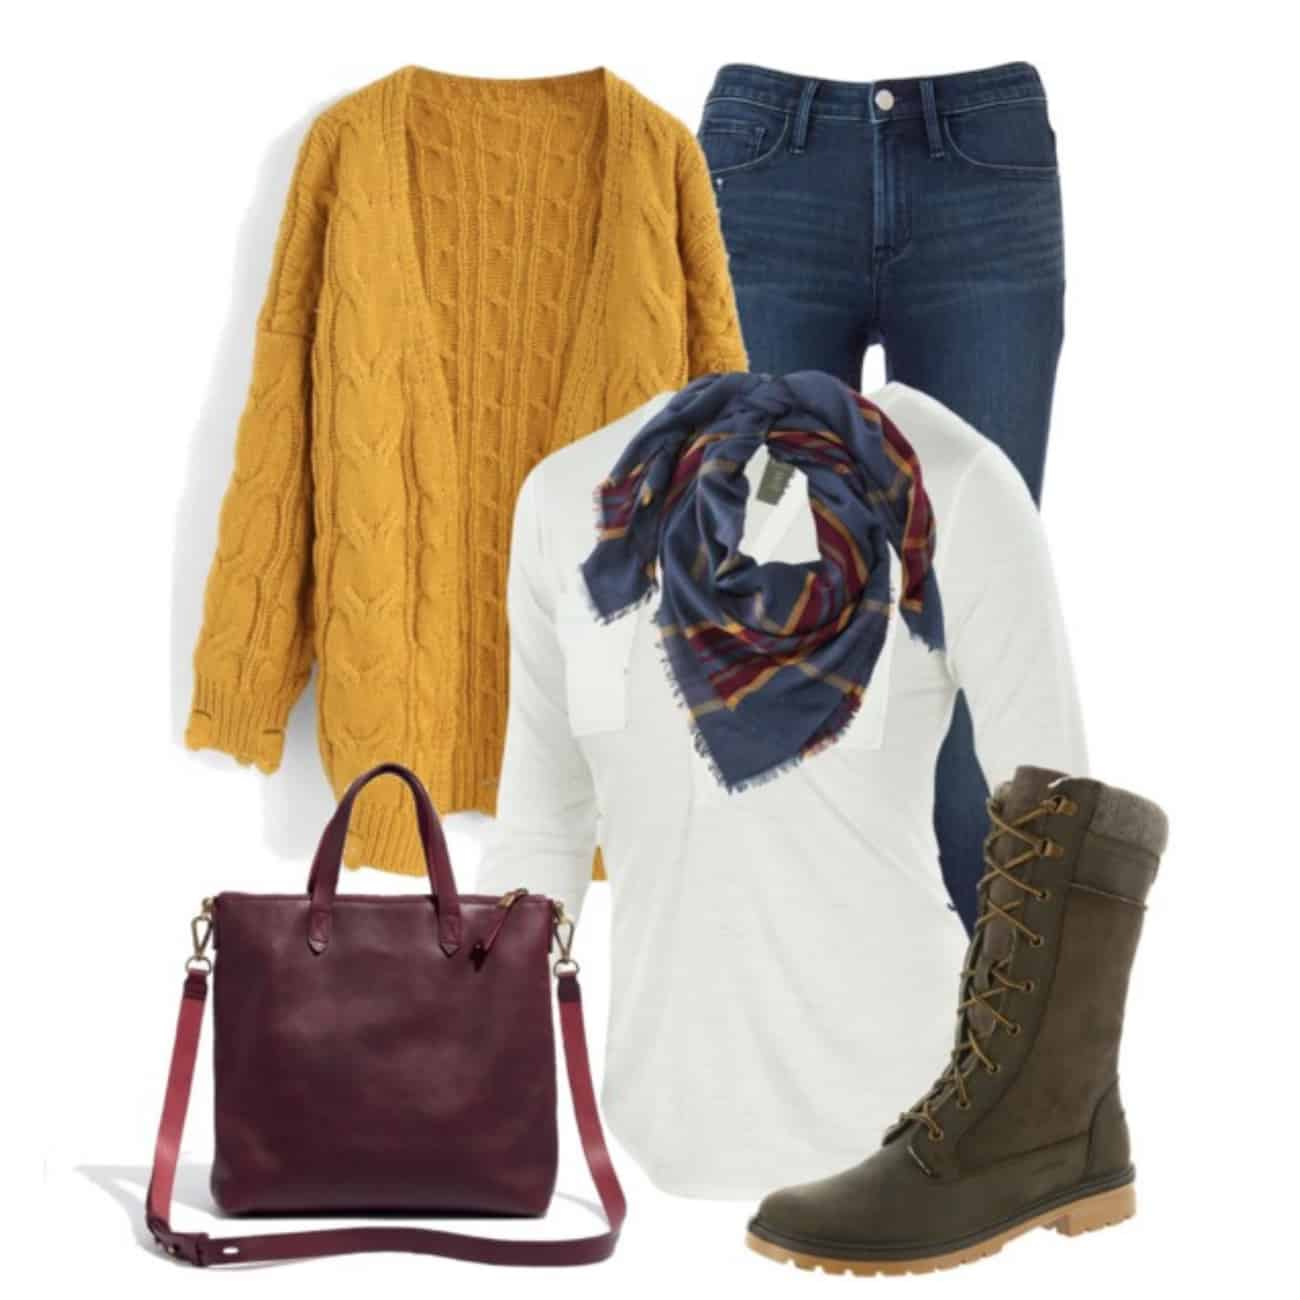 cozy winter outfit for mom